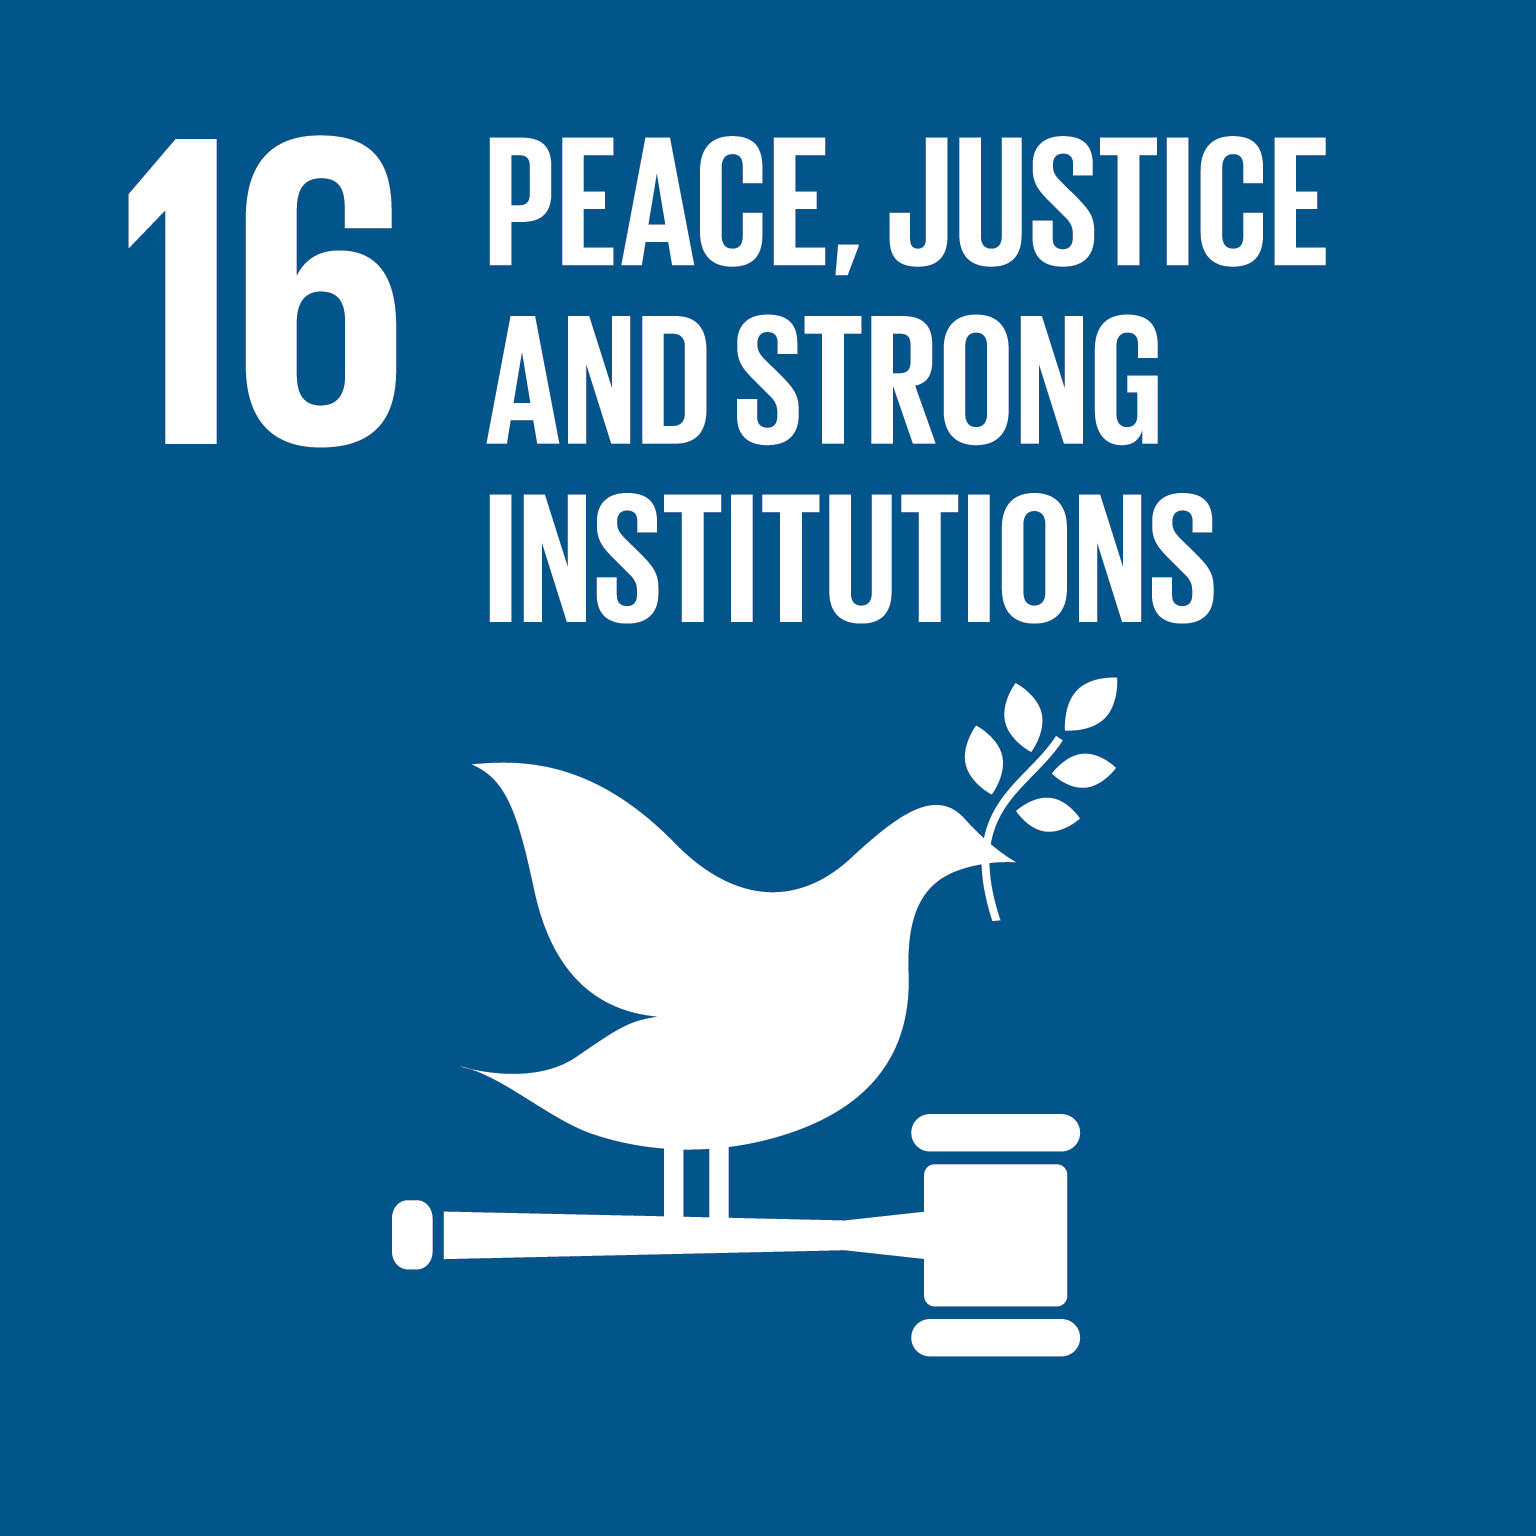 SDG Goal 16 'Peace, justice and strong institutions' © UN